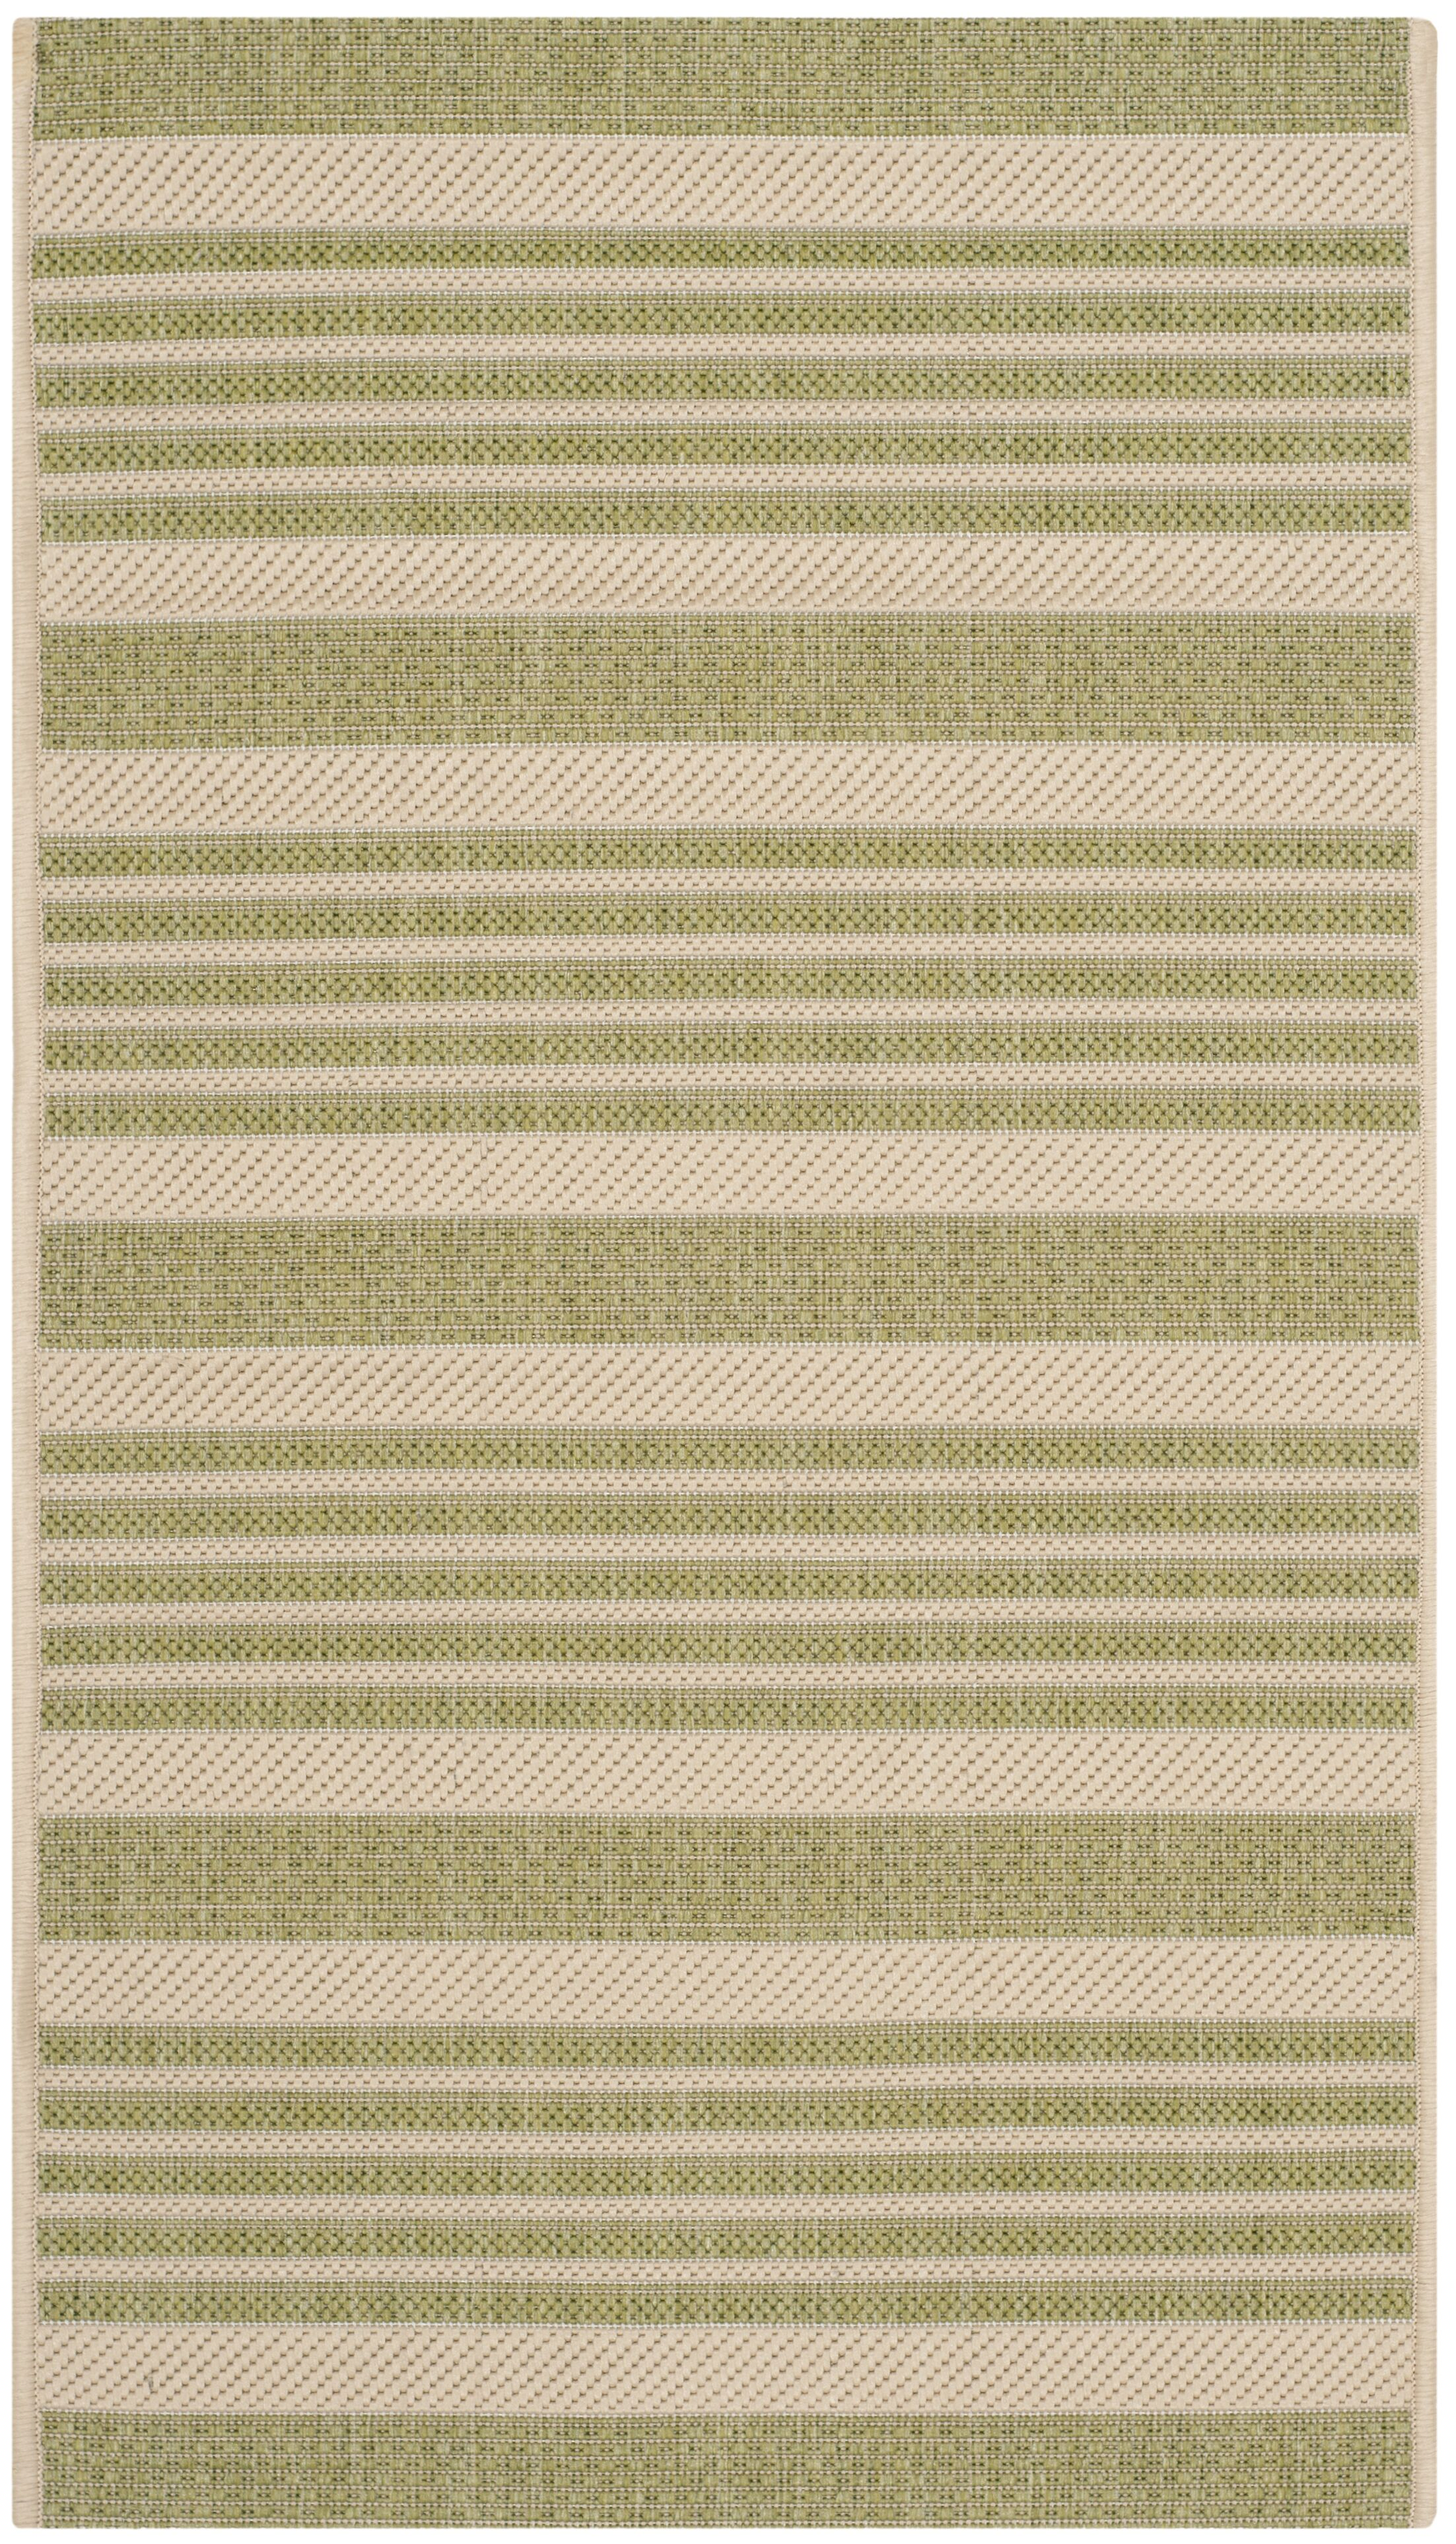 Sophina Beige/Sweet Pea Striped Contemporary Indoor/Outdoor Area Rug Rug Size: Rectangle 5'3